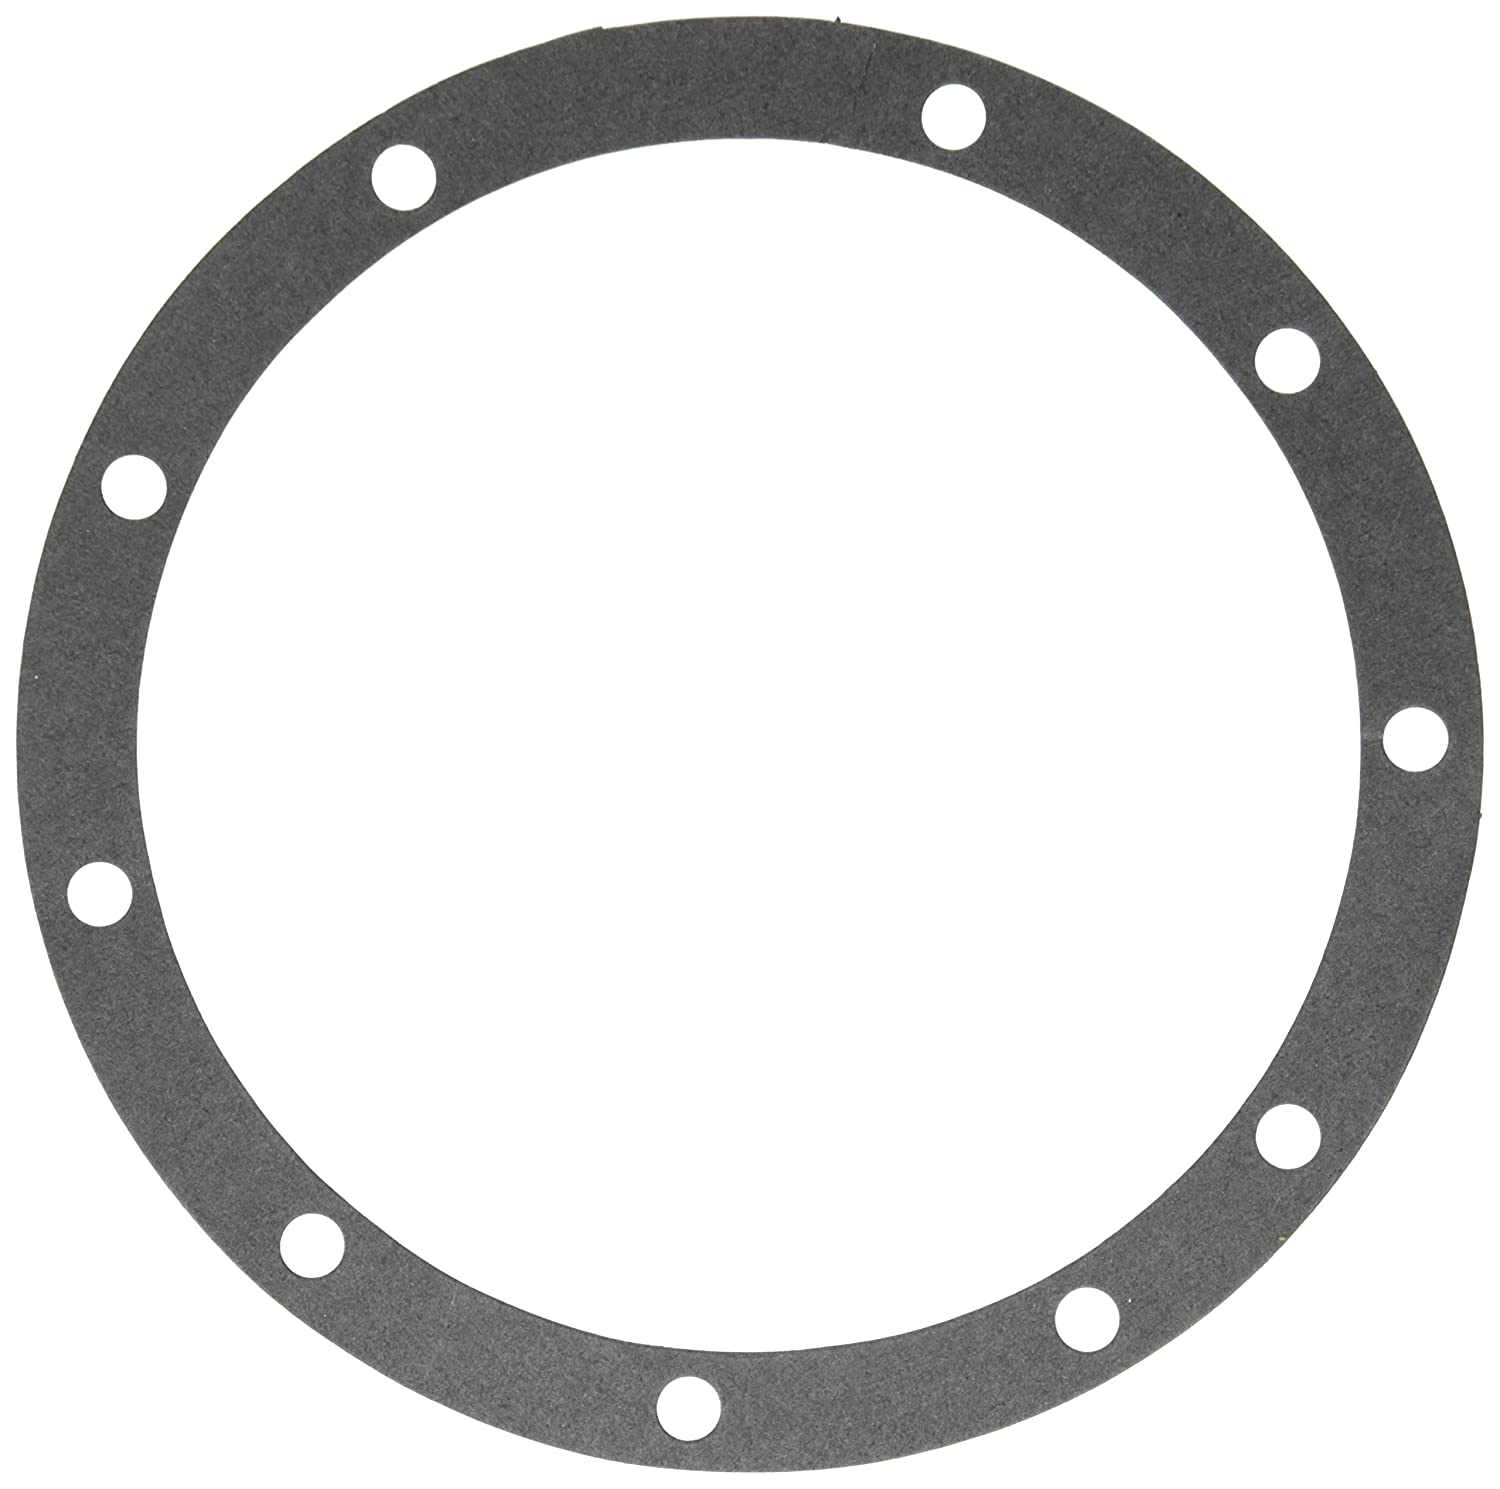 Motive Gear 5101 Differential Cover Gasket